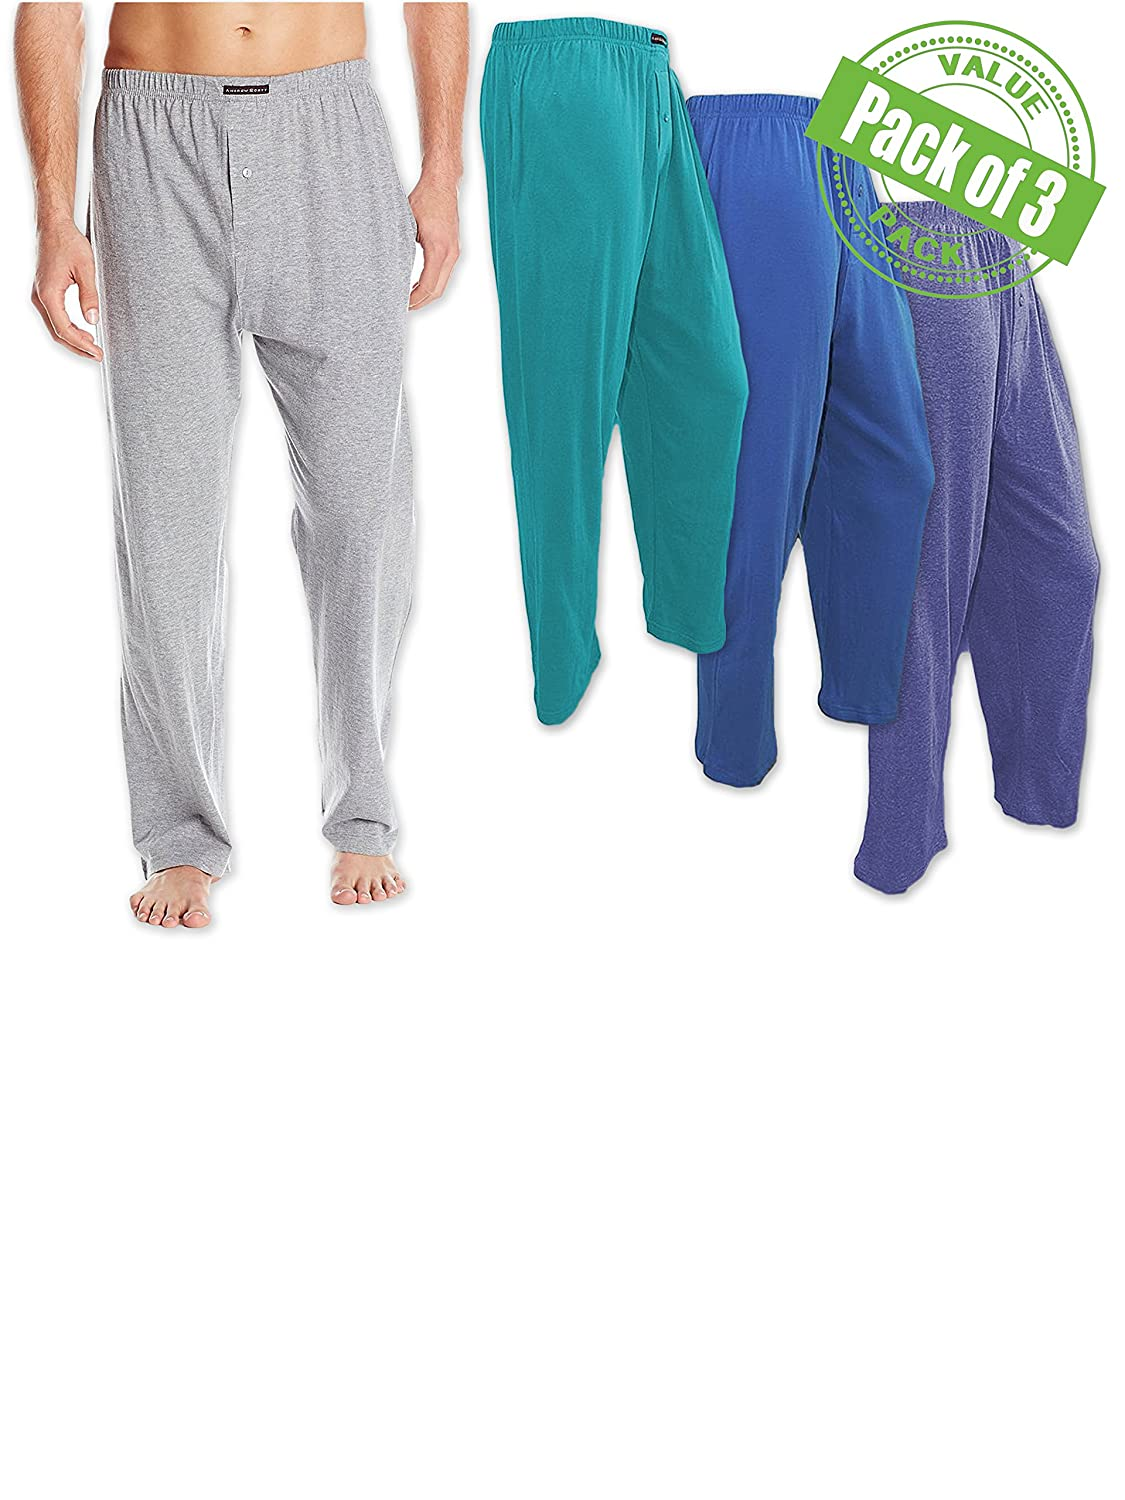 Andrew Scott Men's 3 Pack Cotton Knit Jersey Lightweight Yoga Lounge Sleep Pant 74444X3